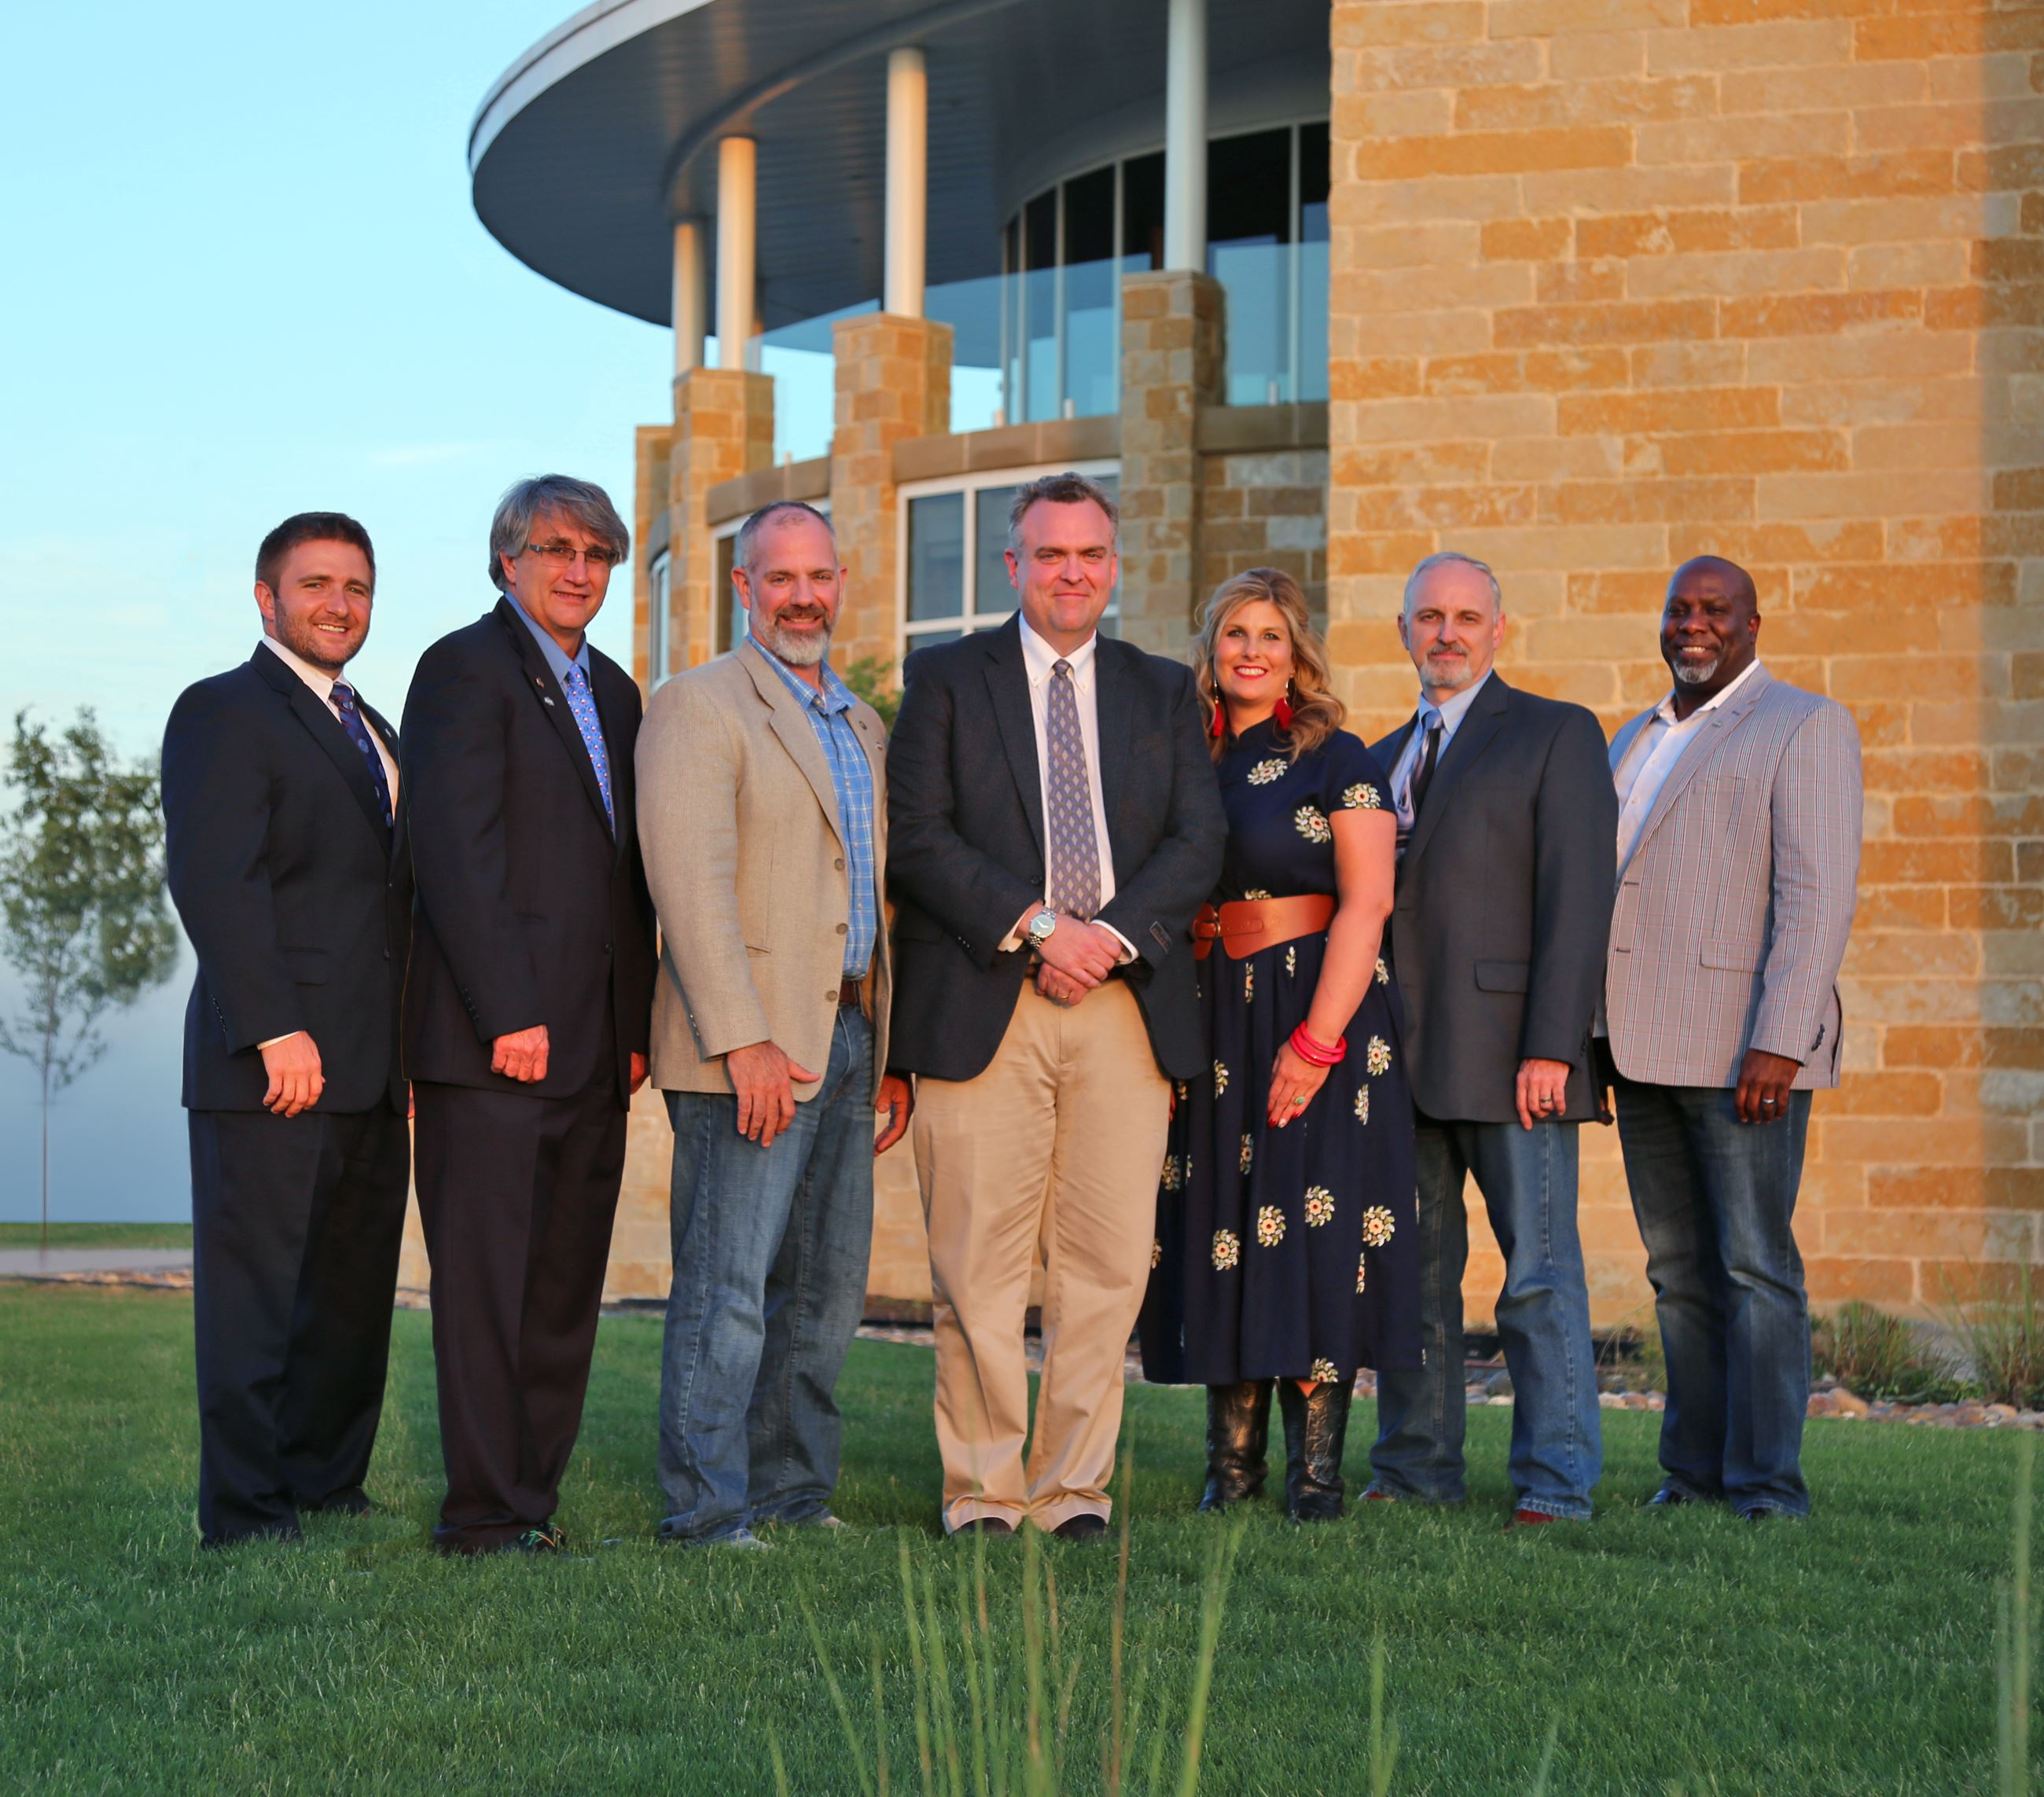 2019 Fate City Council group picture in front of City Hall